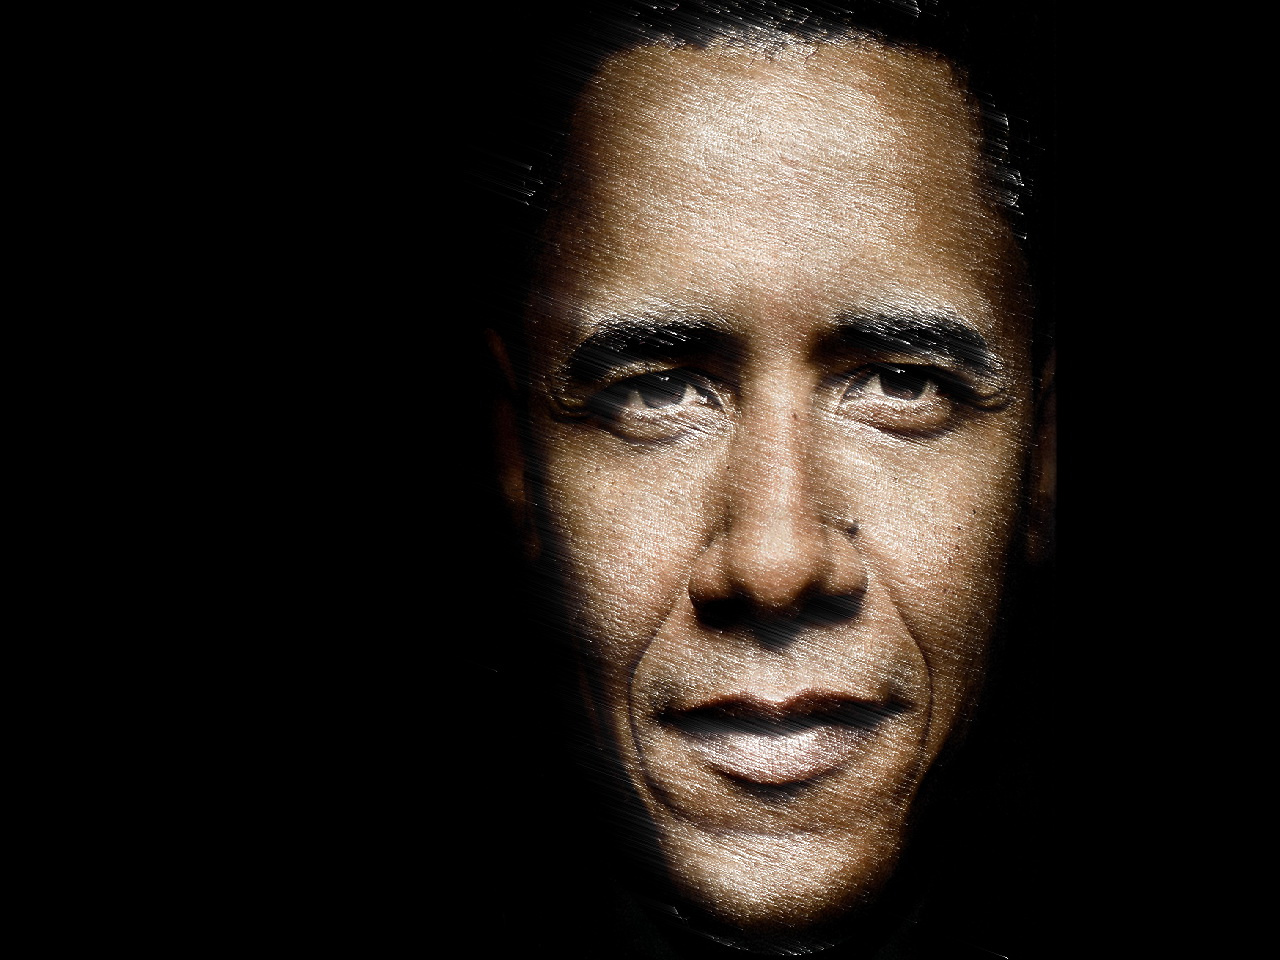 Rss wallpapers political hd wallpaper barack obama - Political wallpaper ...